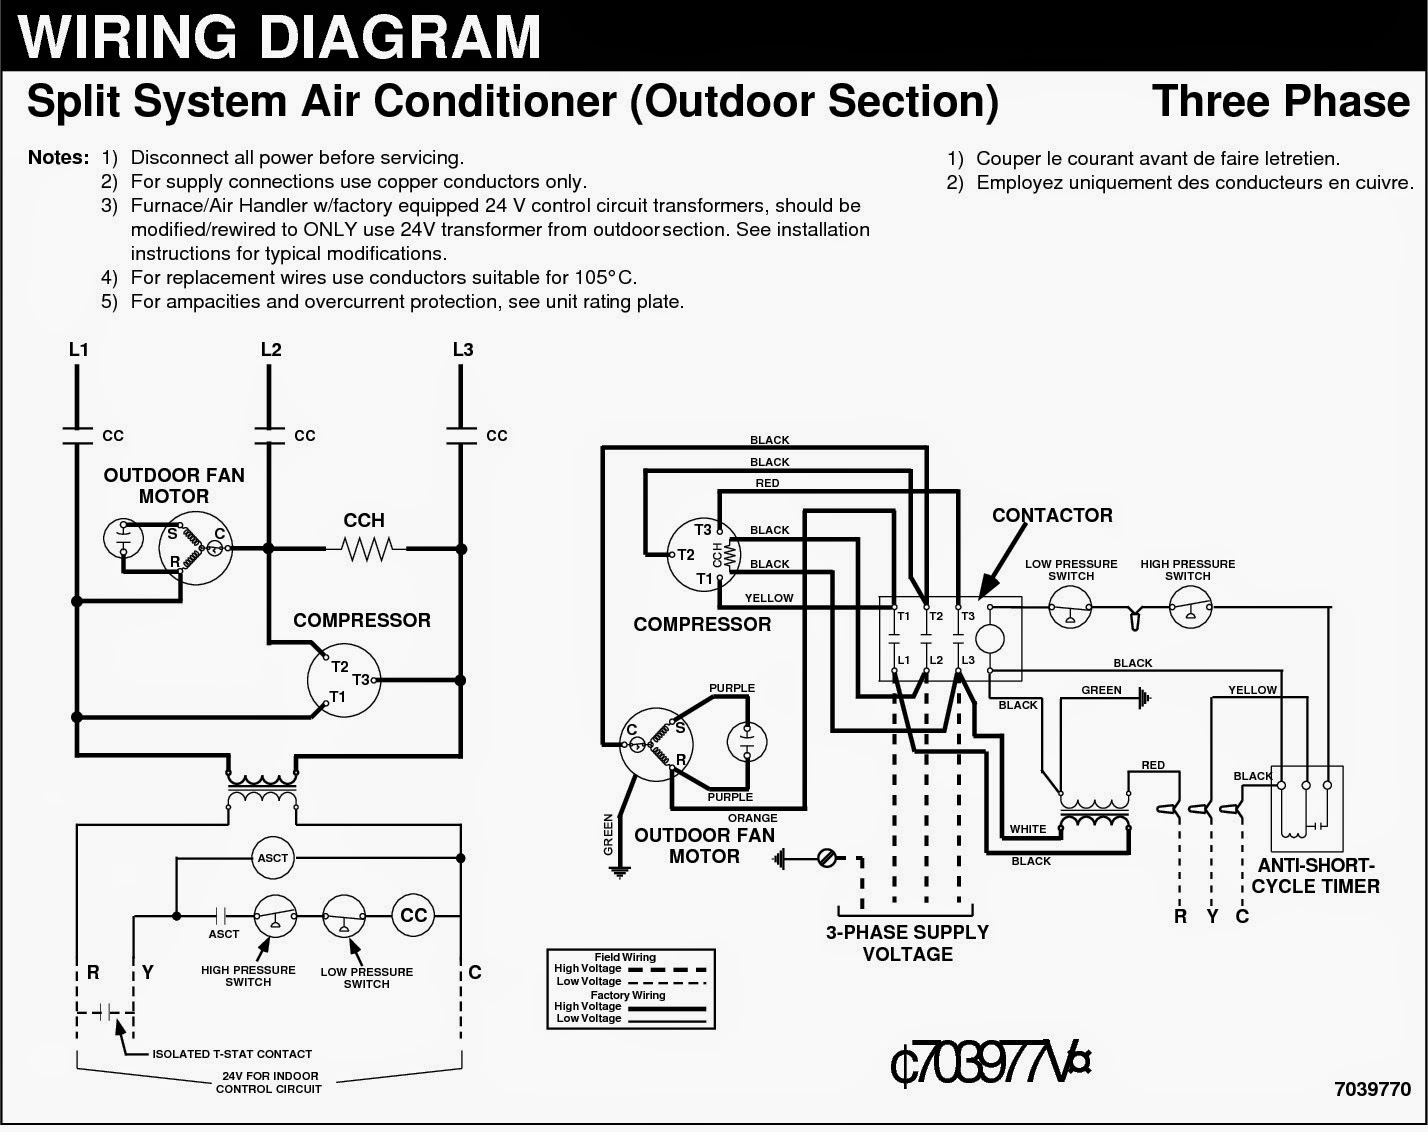 Electrical wiring diagrams for air conditioning systems part two fig13 split air cooling units three phase electrical wiring diagram cheapraybanclubmaster Images